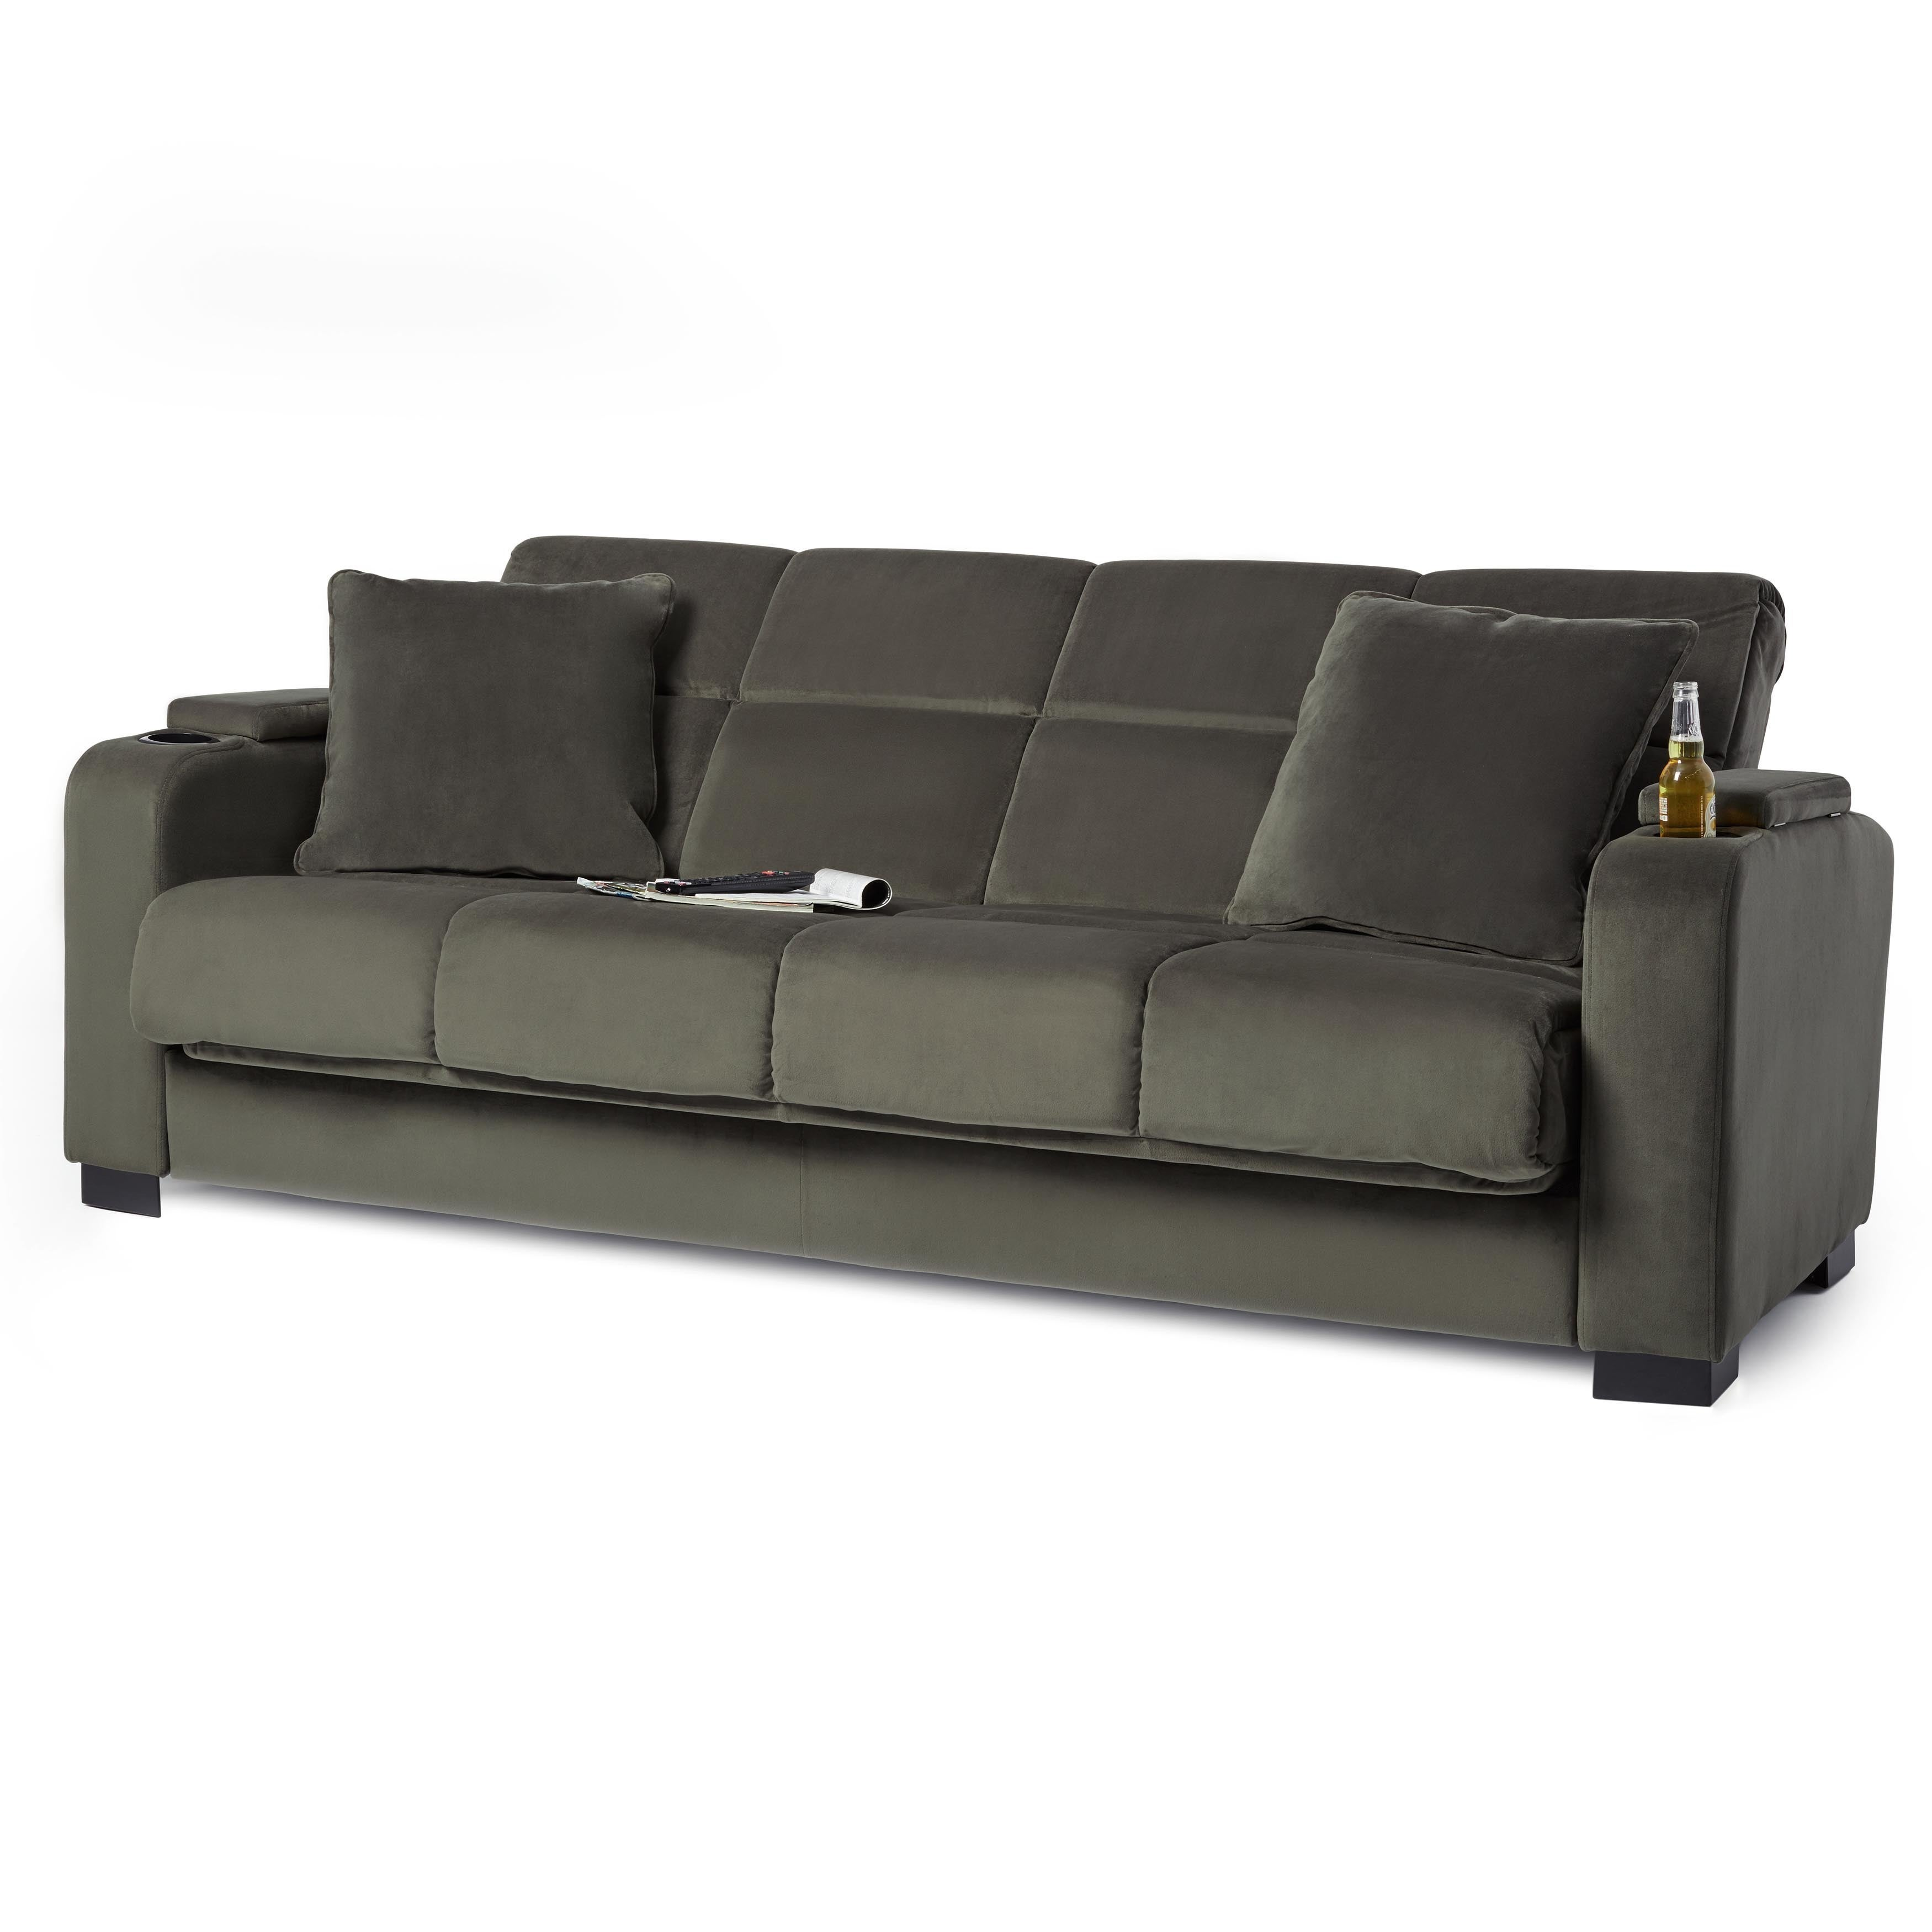 Shop Copper Grove Jessie Grey Velvet Convert-a-Couch Futon Sofa ...